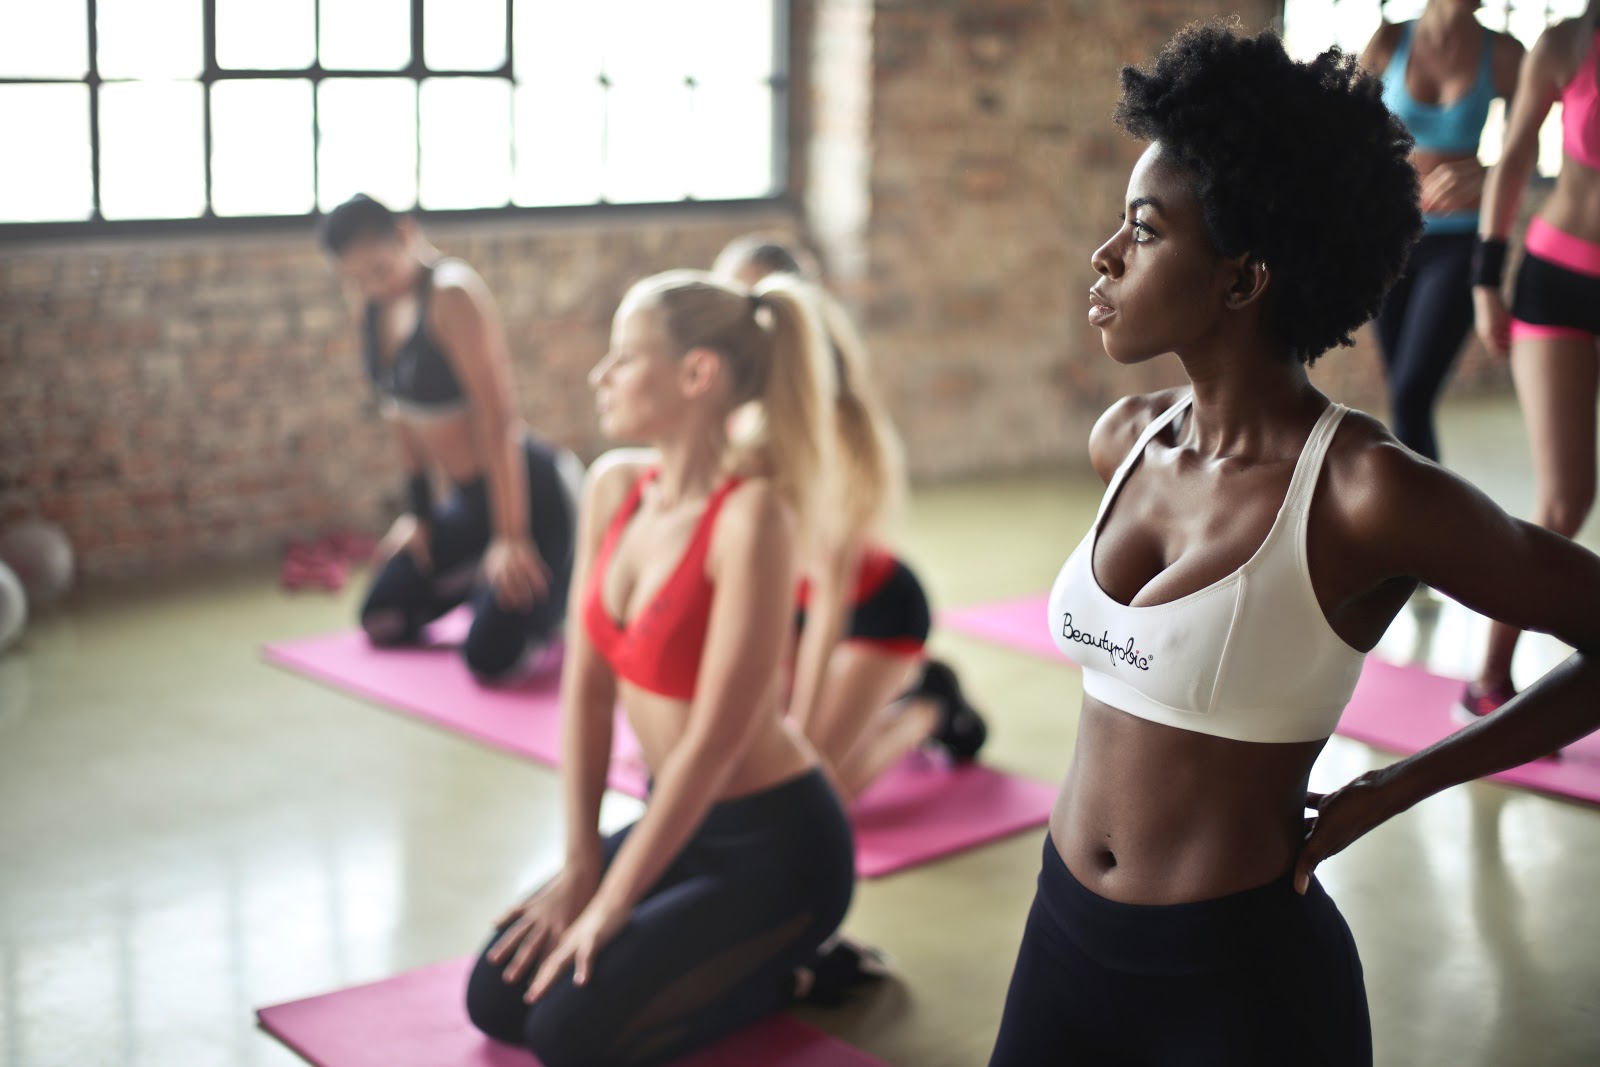 Try New Activities/ Fitness Classes to lose weight